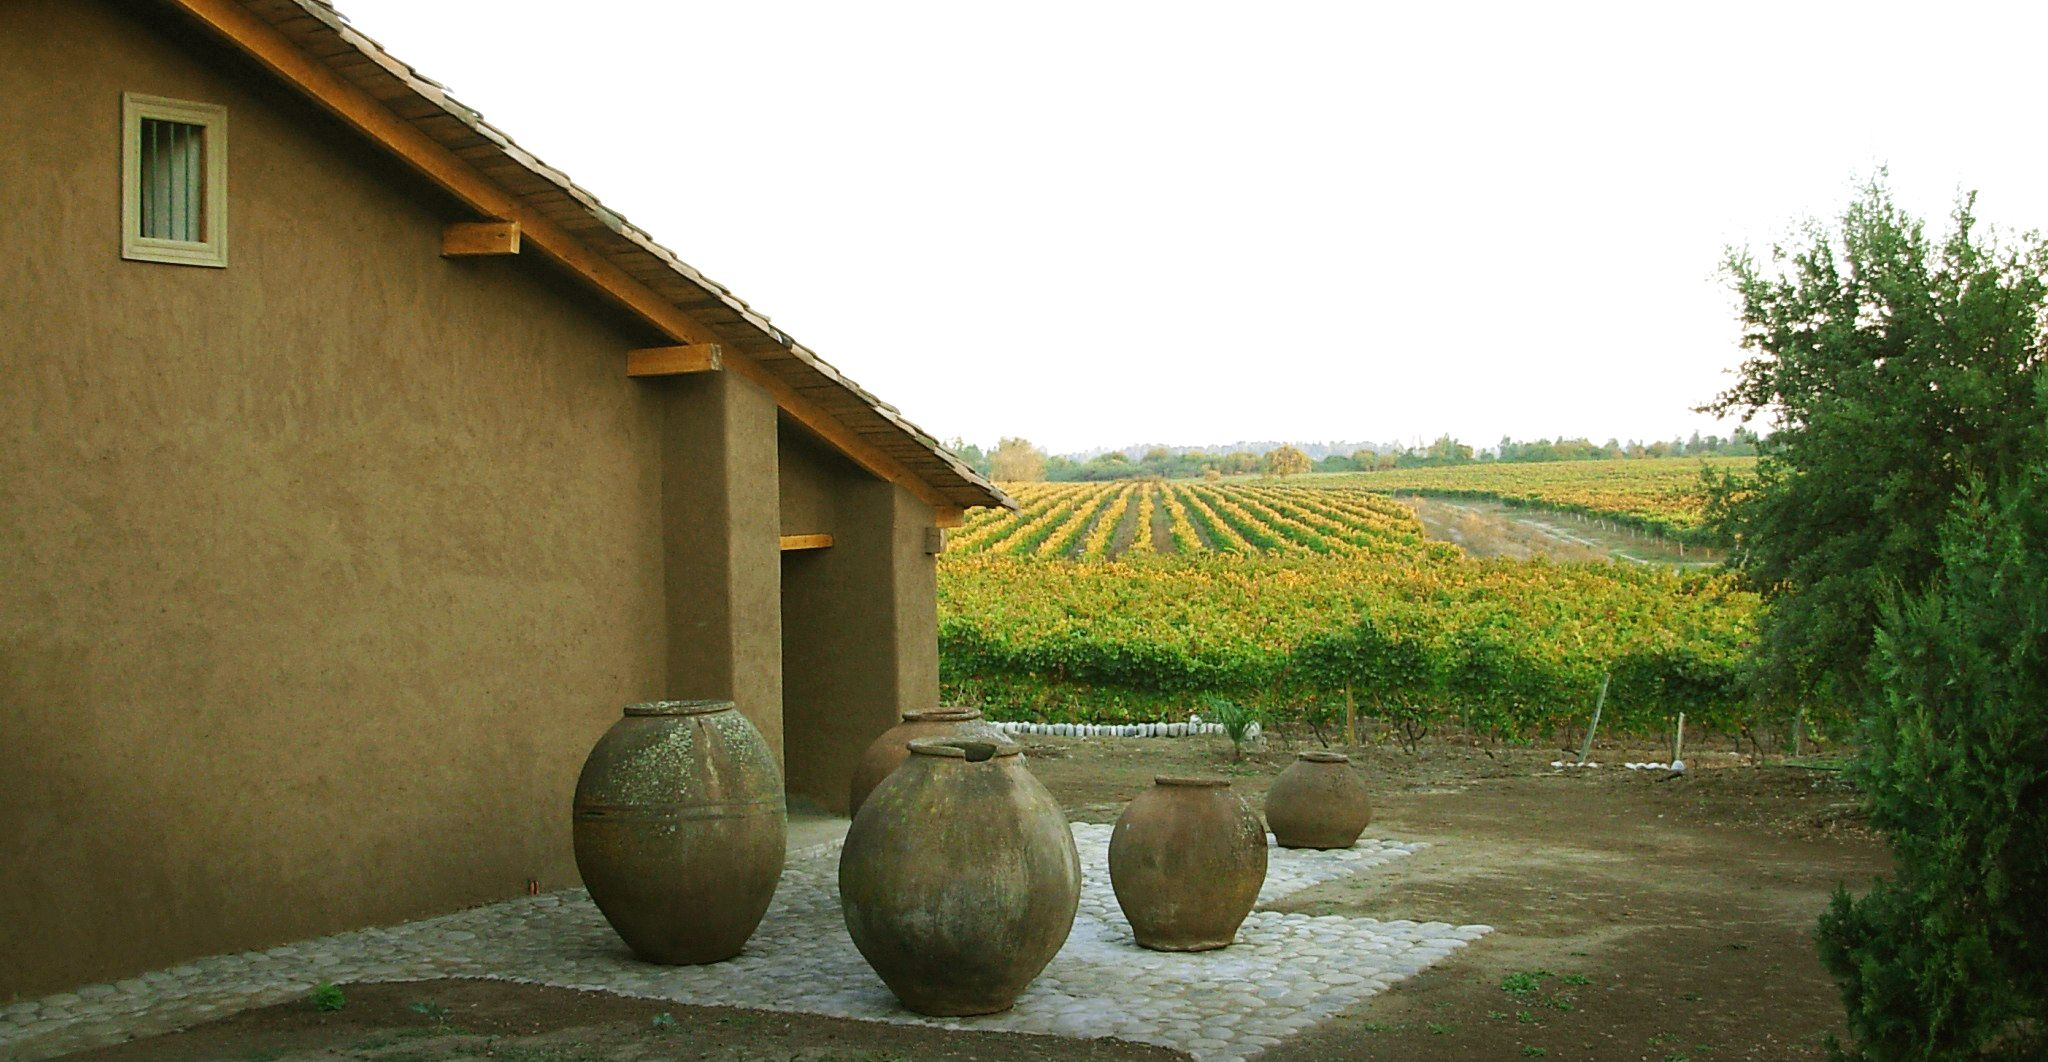 The Bustamante Vineyard in Chile